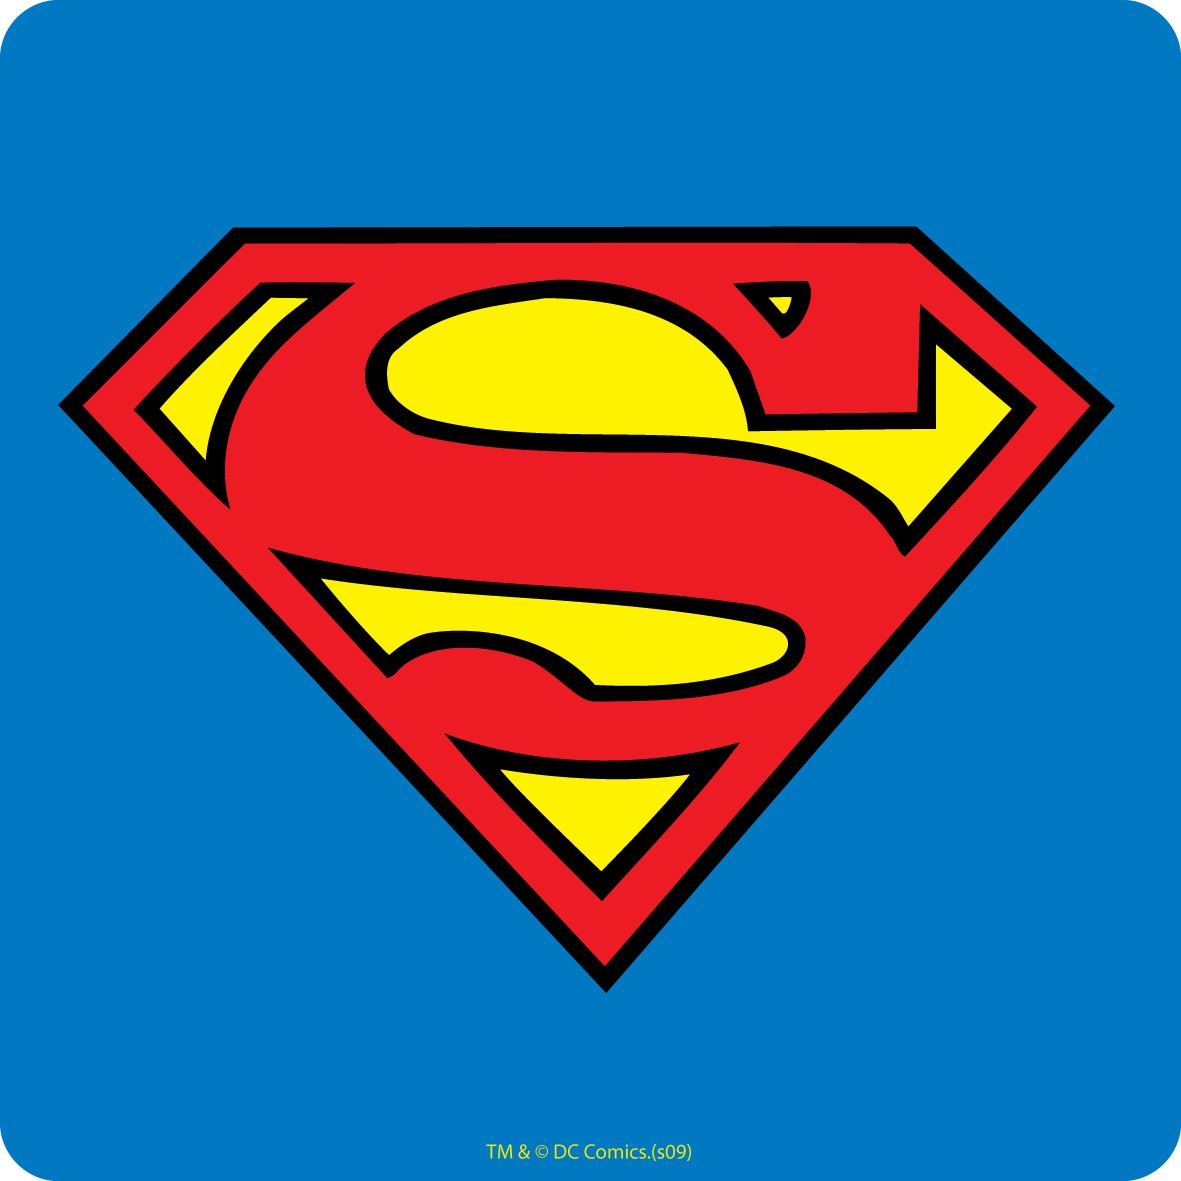 (Superman logo from DC Comics)